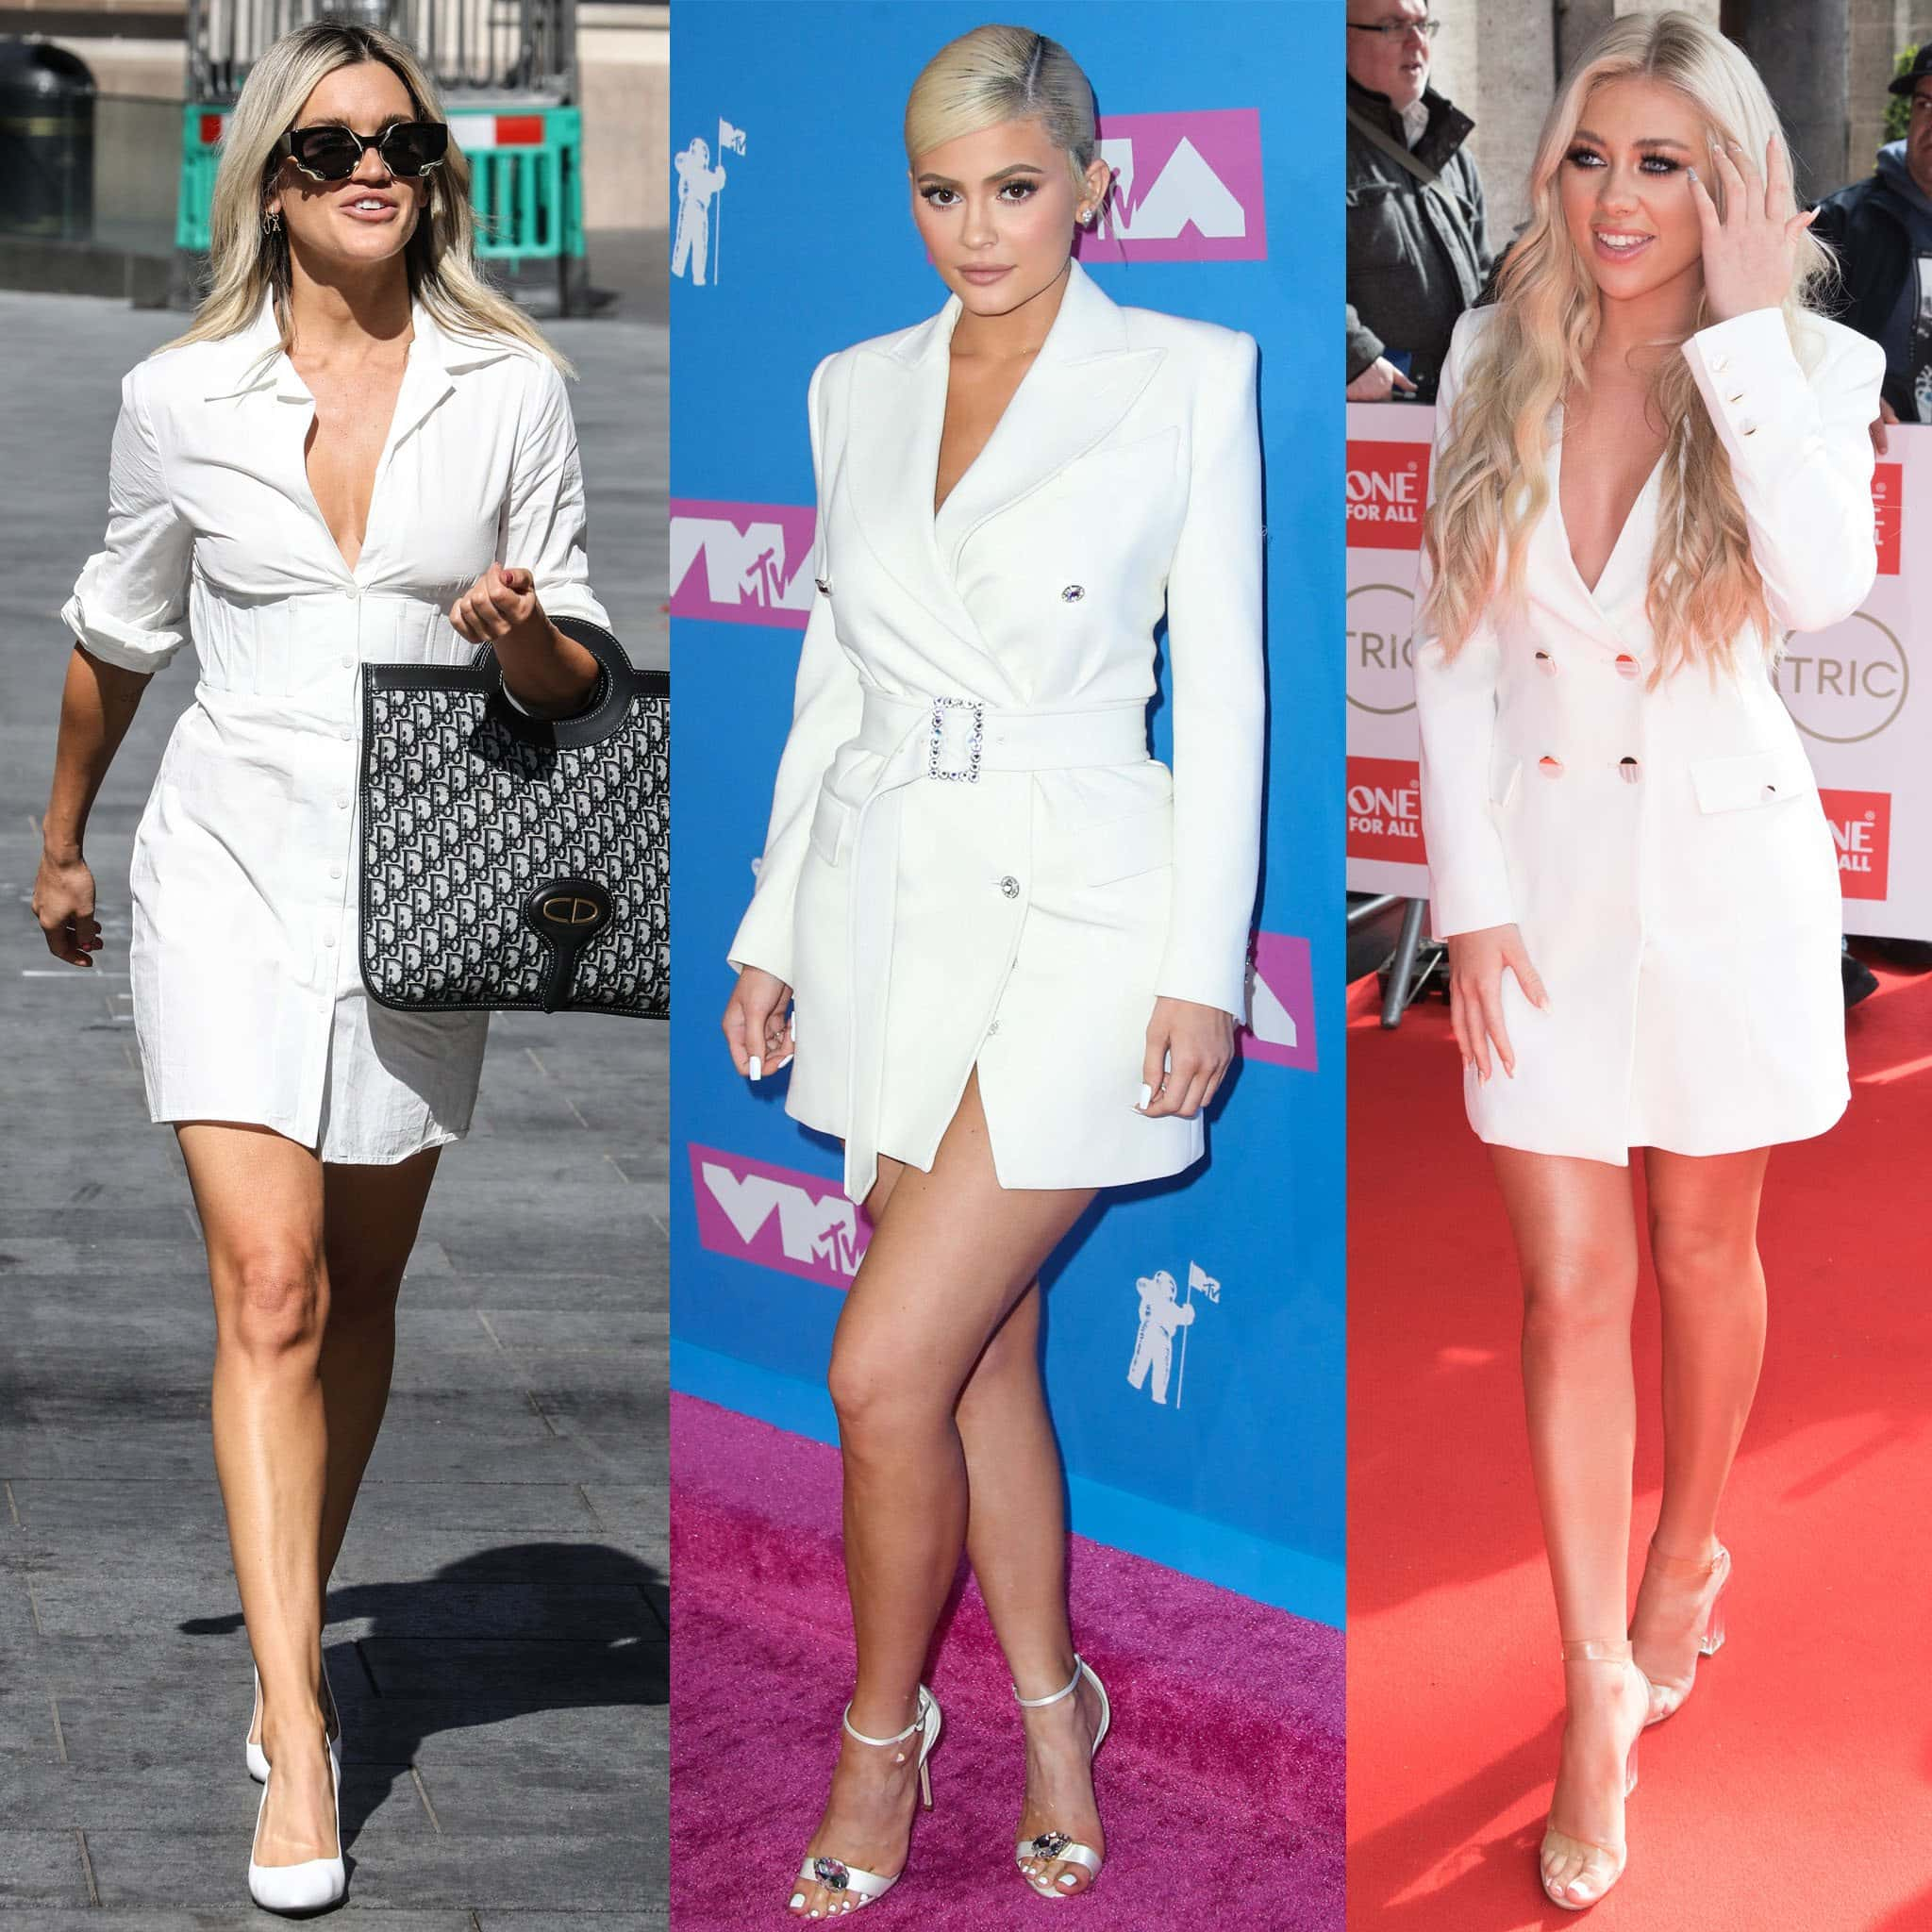 Ashley Roberts, Kylie Jenner, and Paige Turley show what shoes to wear with little white dresses